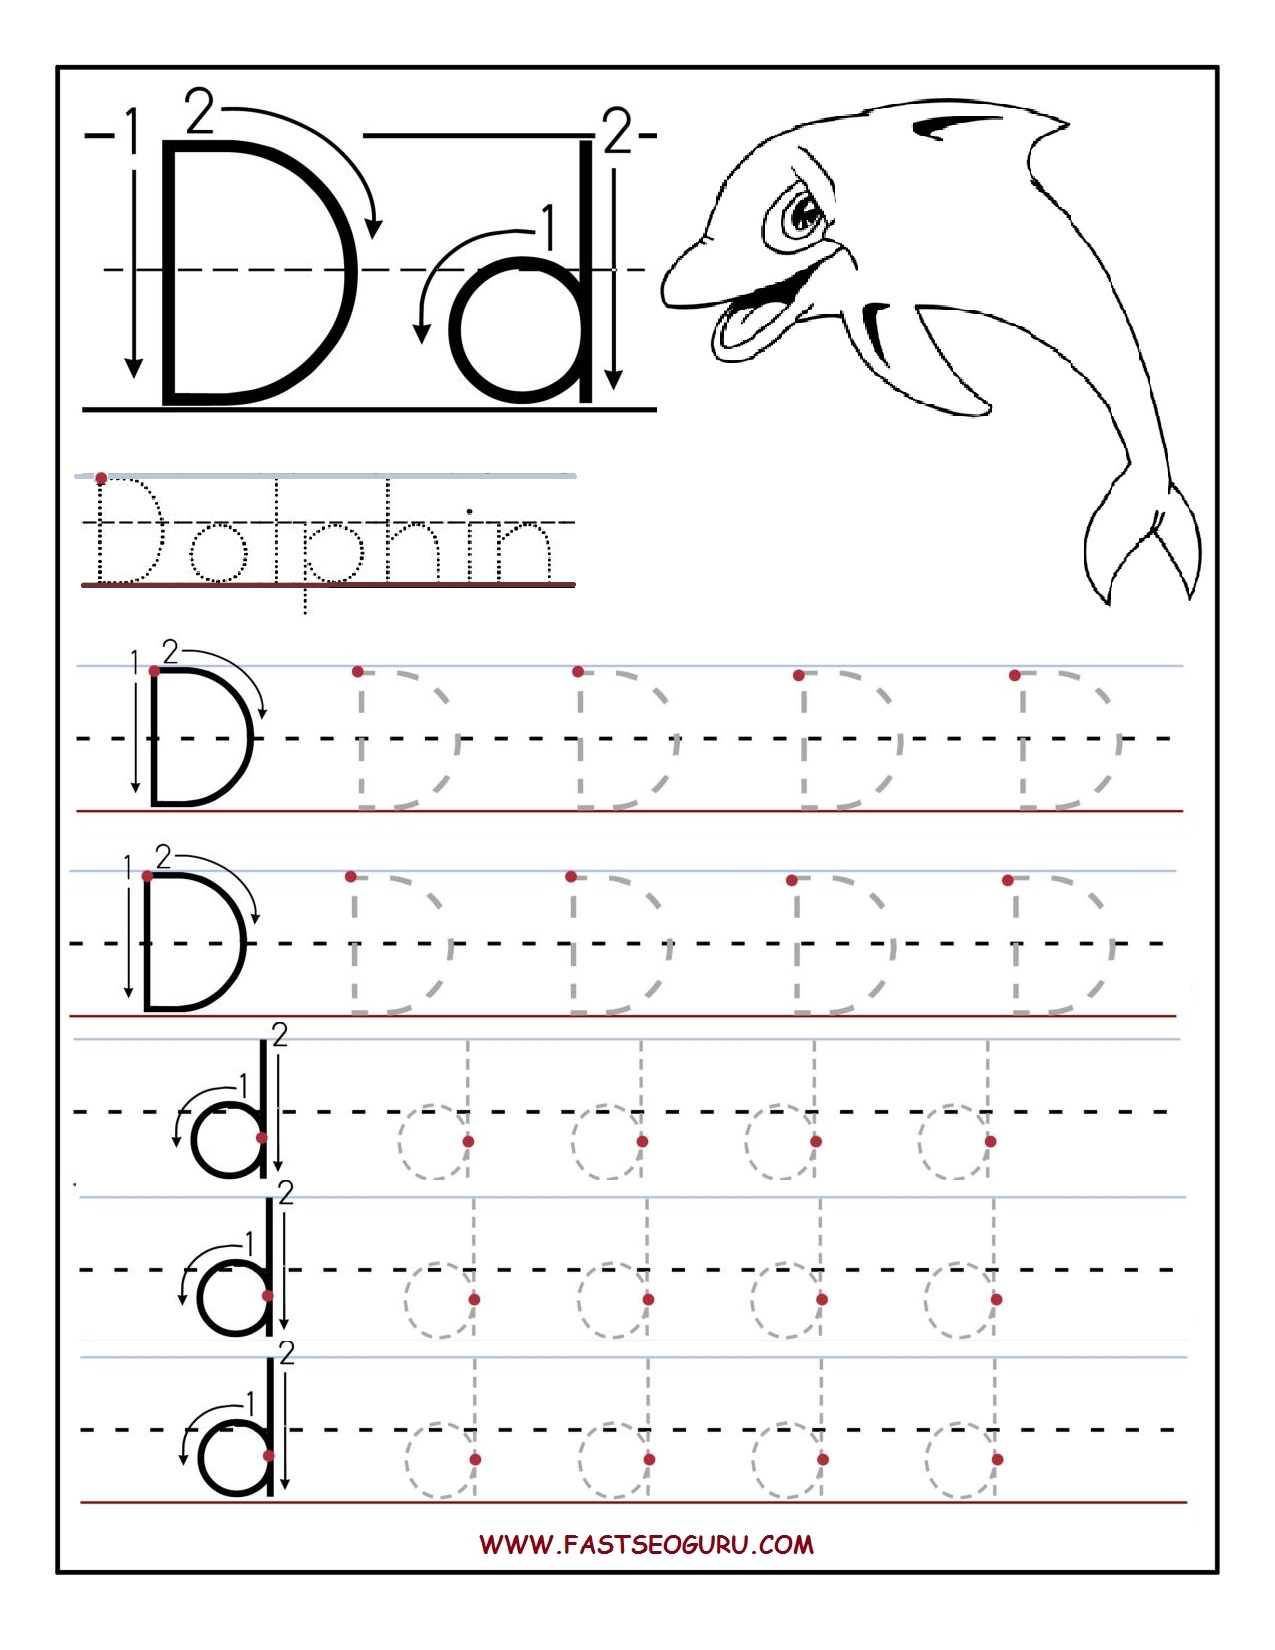 Tracing Worksheets Letter D And Printable Letters On